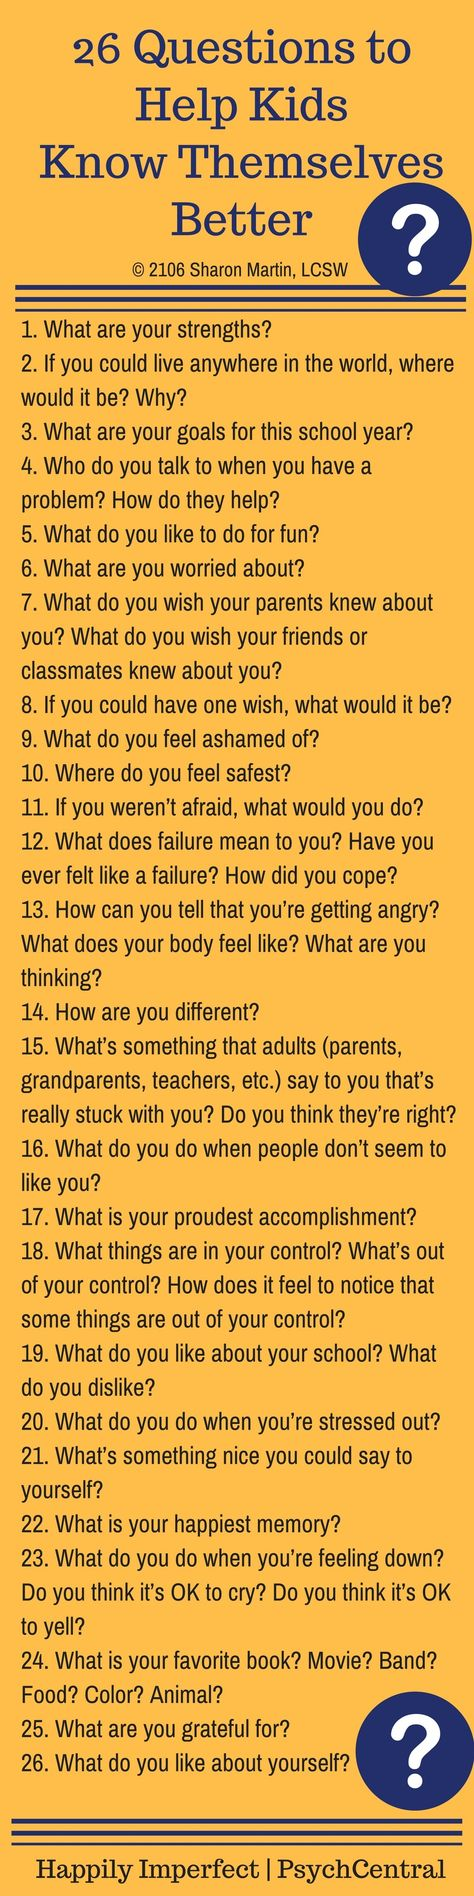 26 Questions To Help Kids Know Themselves Better Helping Kids Kids Learning Parenting